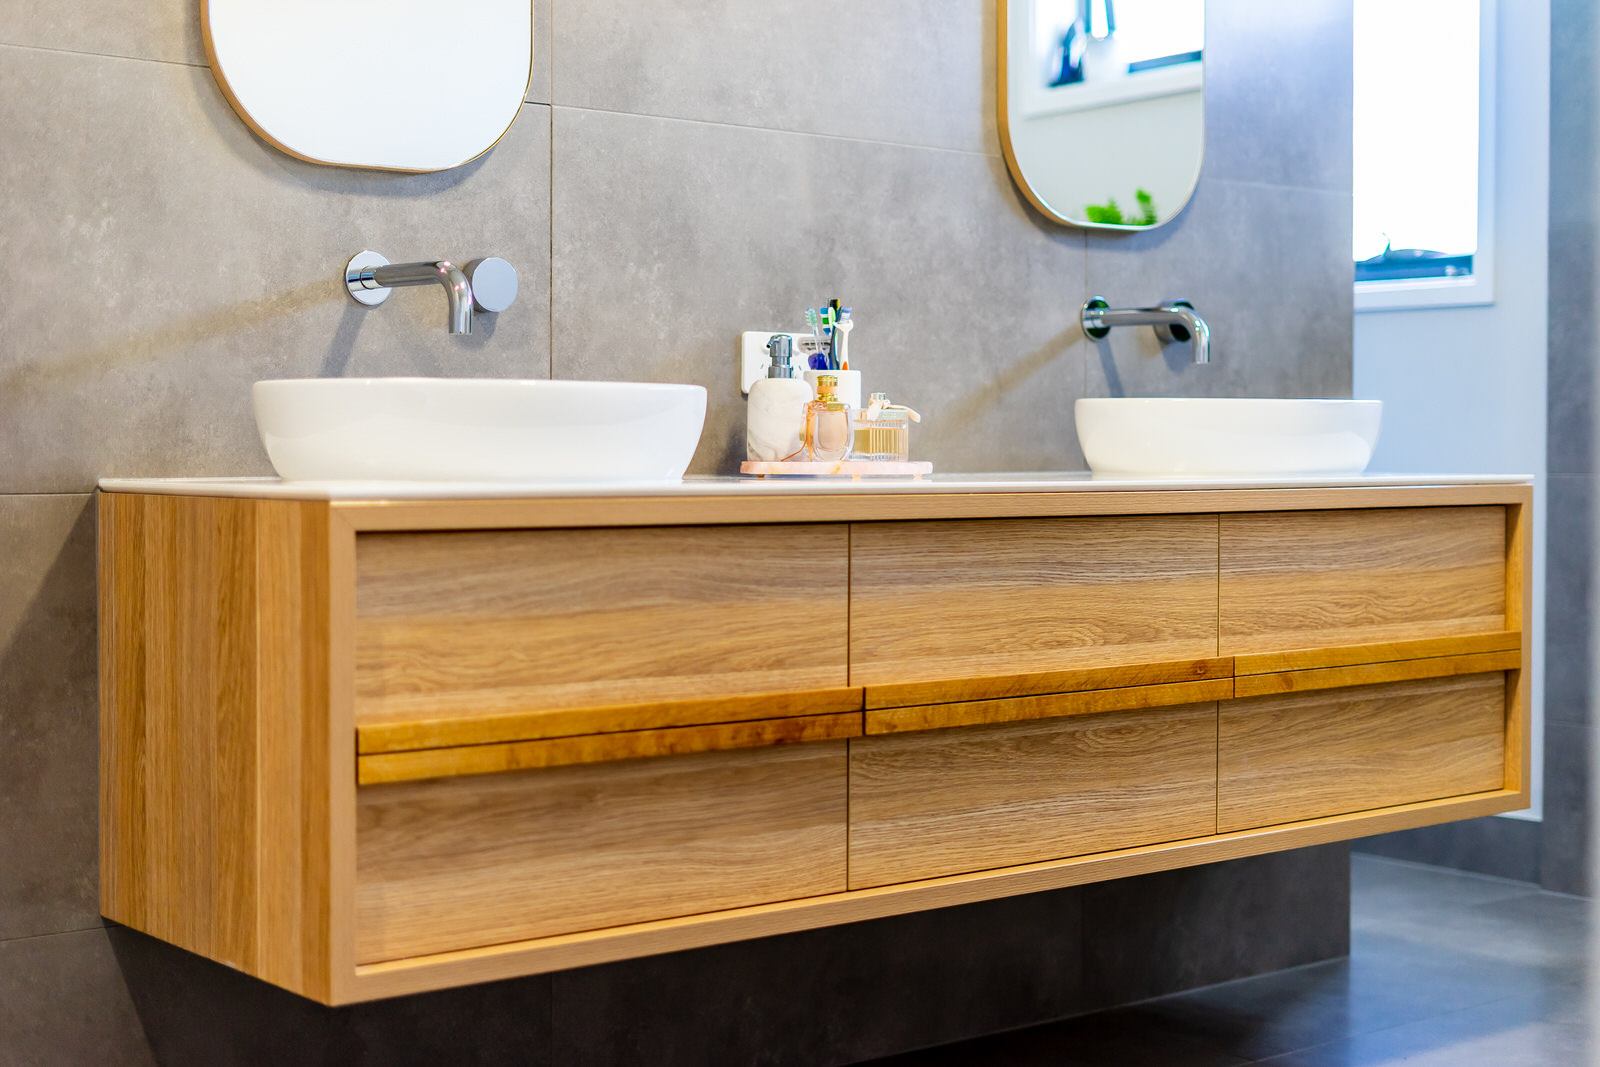 wooden bathroom vanity 2 sinks in Sorrento bathroom renovation